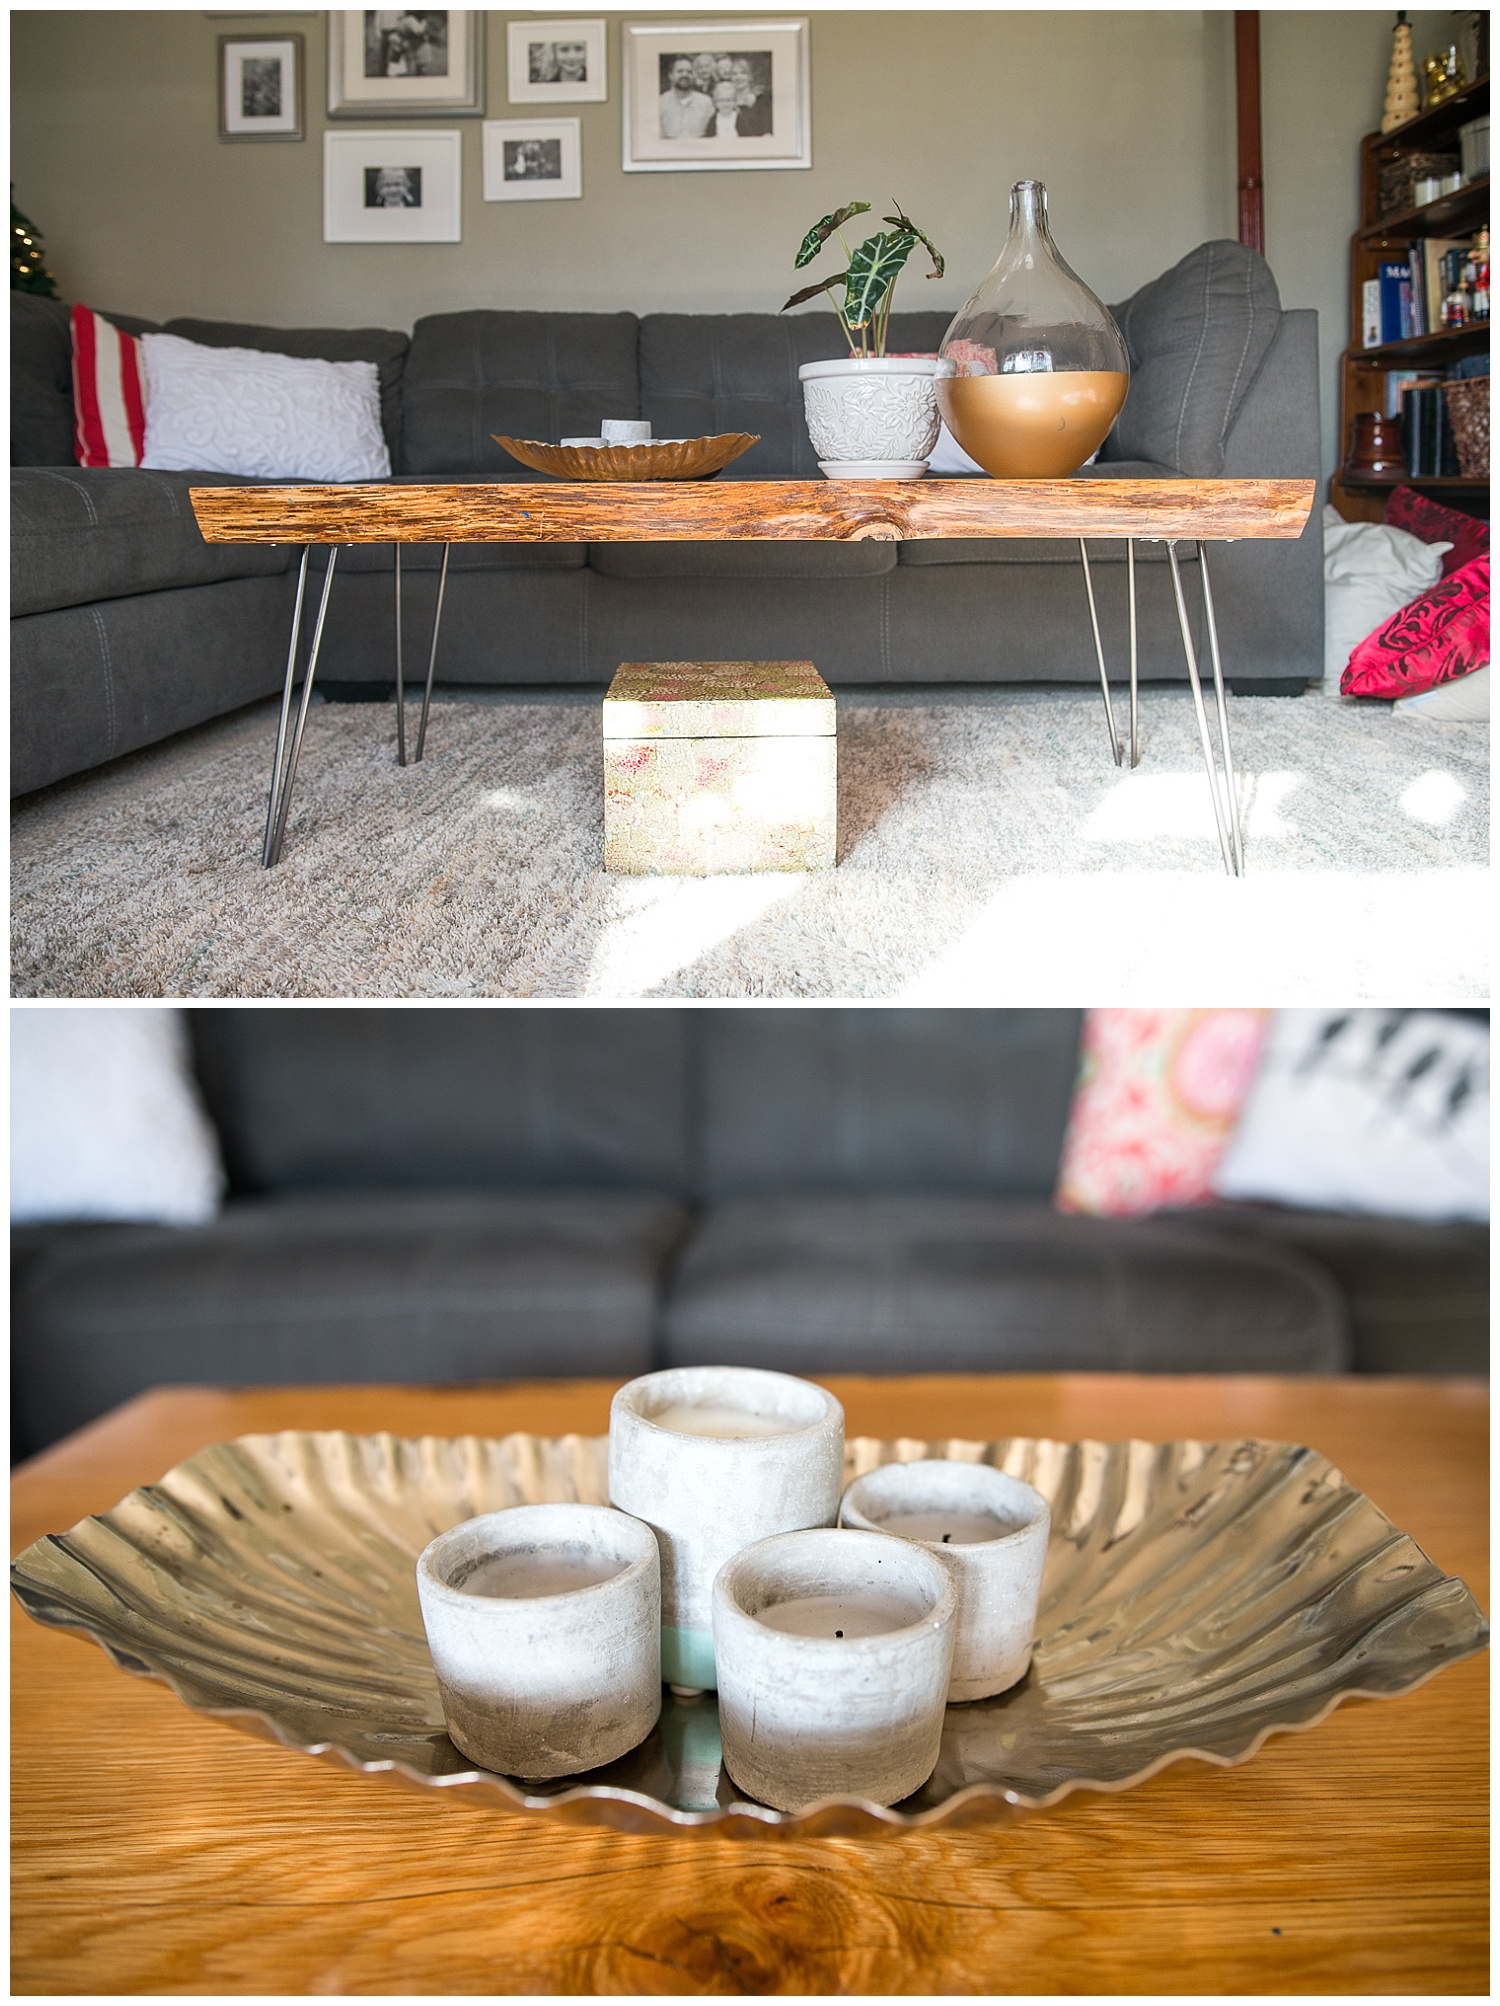 This is the live edge, locally made coffee table that Aaron bought for Monica from Fresh Digs for her birthday. Tytia Habing took the family photos in the wall collage; this room is where they hang out and watch the kids' favorite show, Gilligan's Island. The ceramic and aqua candle came from Fresh Digs